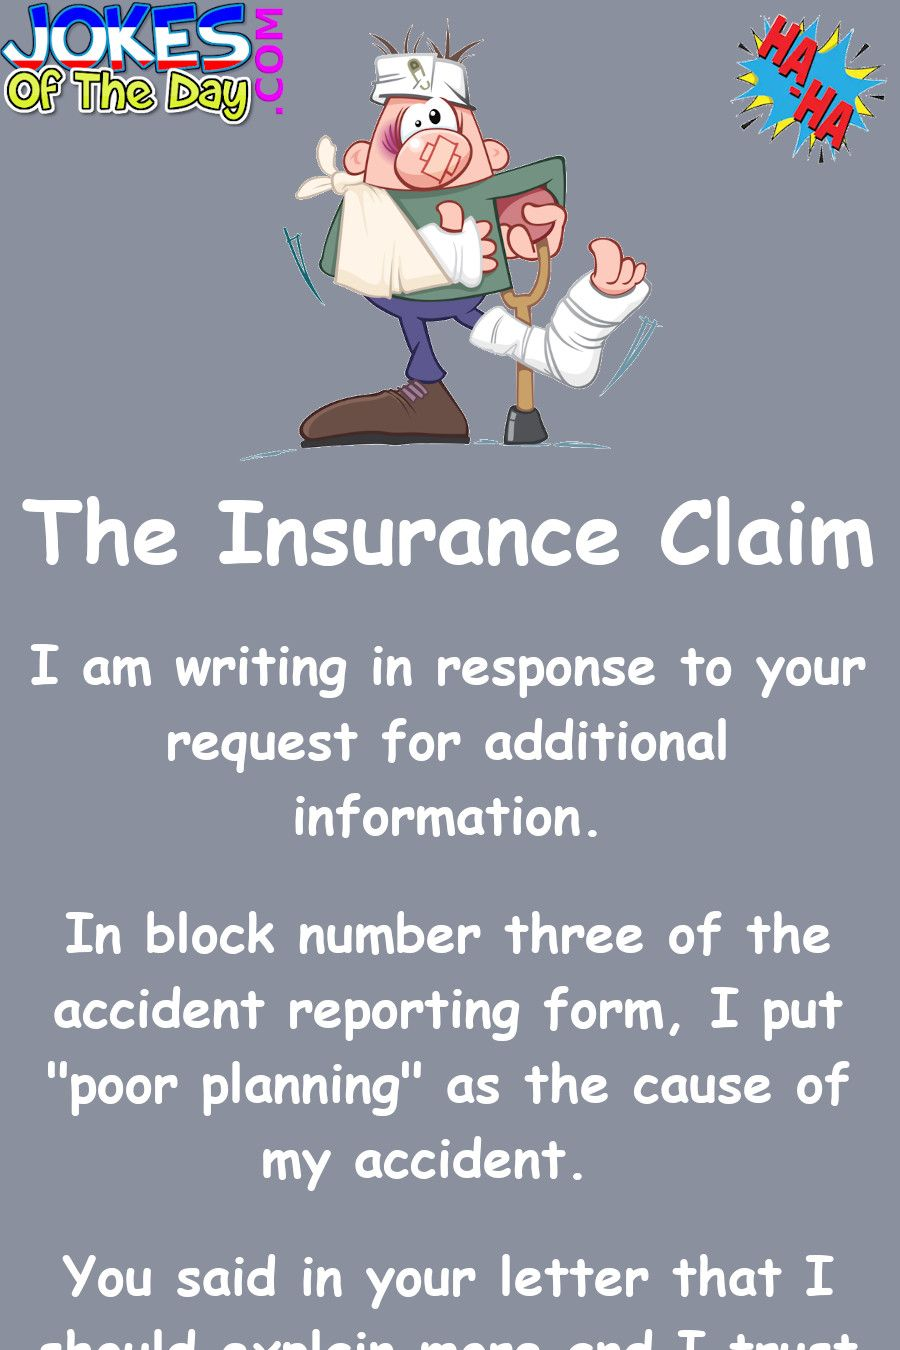 Funny The Insurance Claim in 2020 New funny jokes